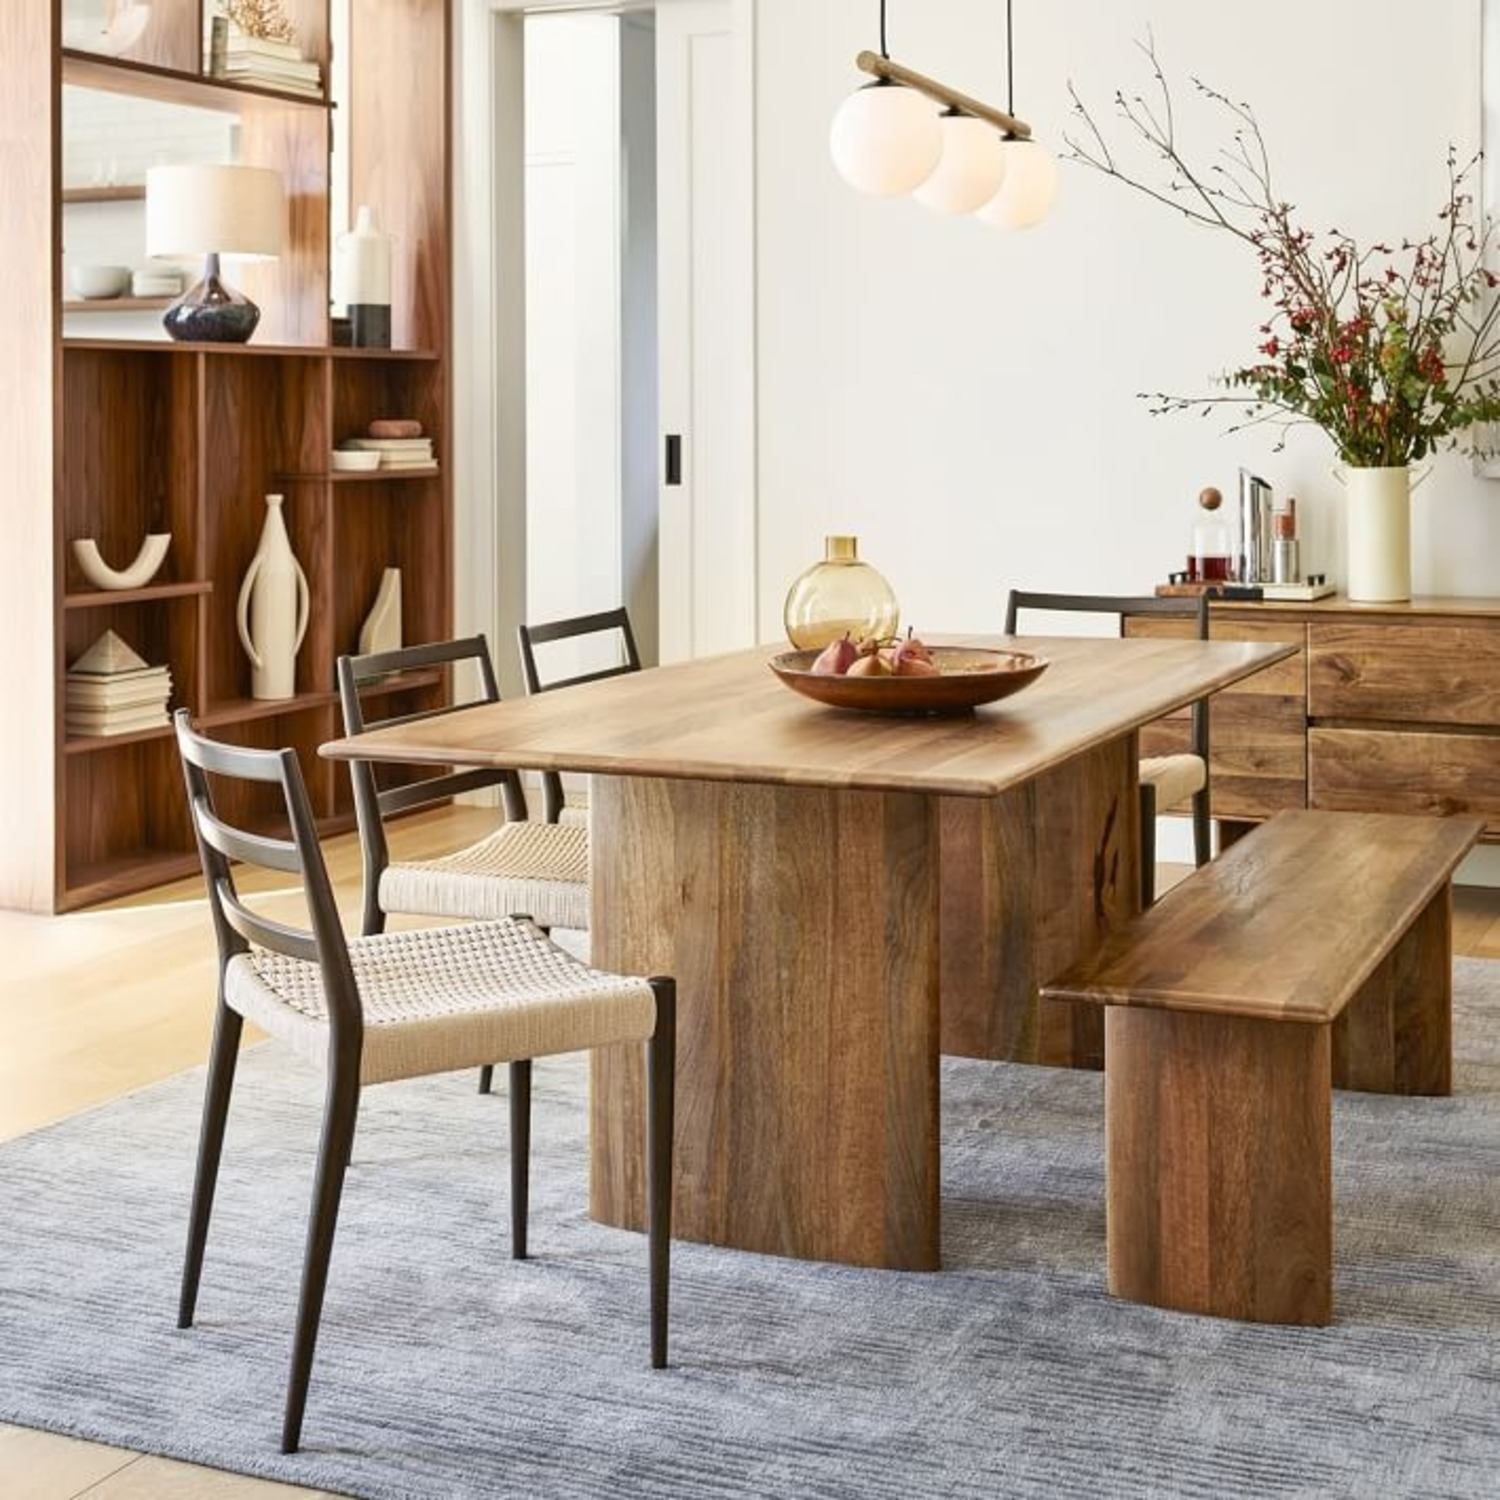 West Elm Anton Solid Wood Dining Table - image-1